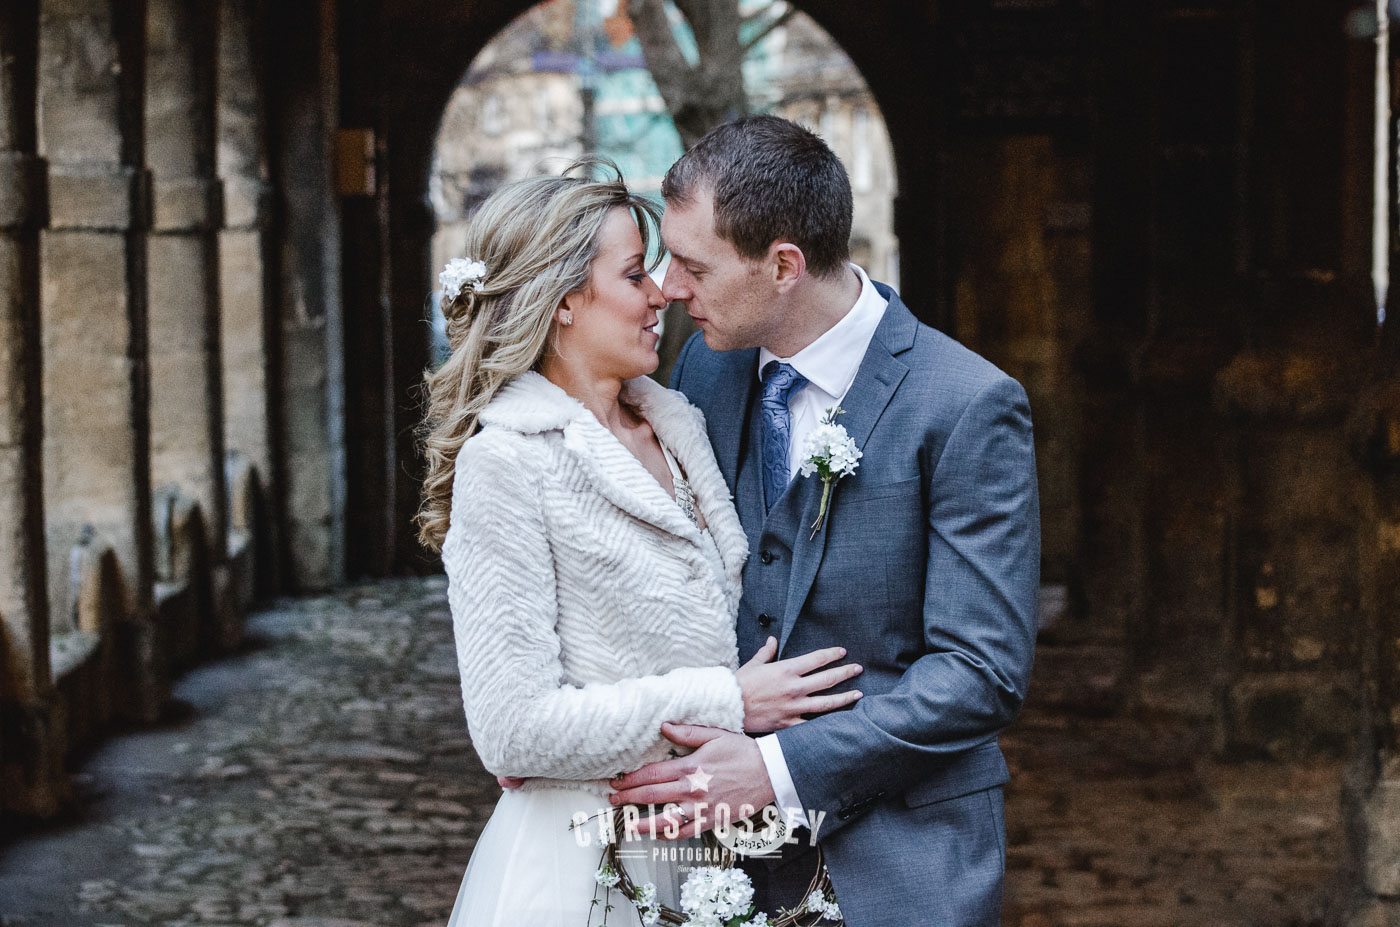 Chipping Campden Wedding Photographer by Chris Fossey Photography